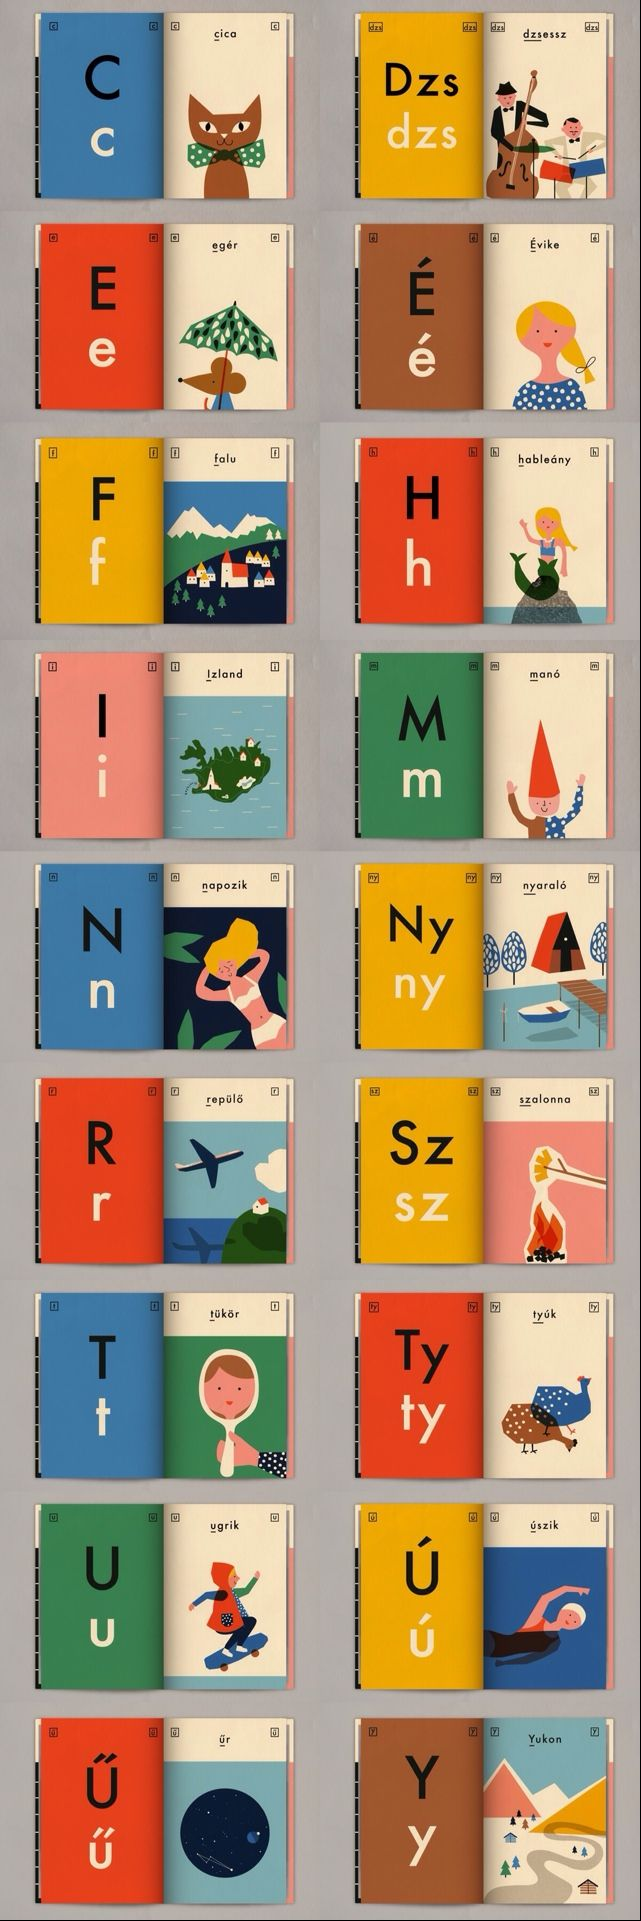 """Ábécés könyv"" - This book is the result of a very personal project aiming to introduce a little girl to the 44 letters of the Hungarian alphabet. By Anna Kövecses."